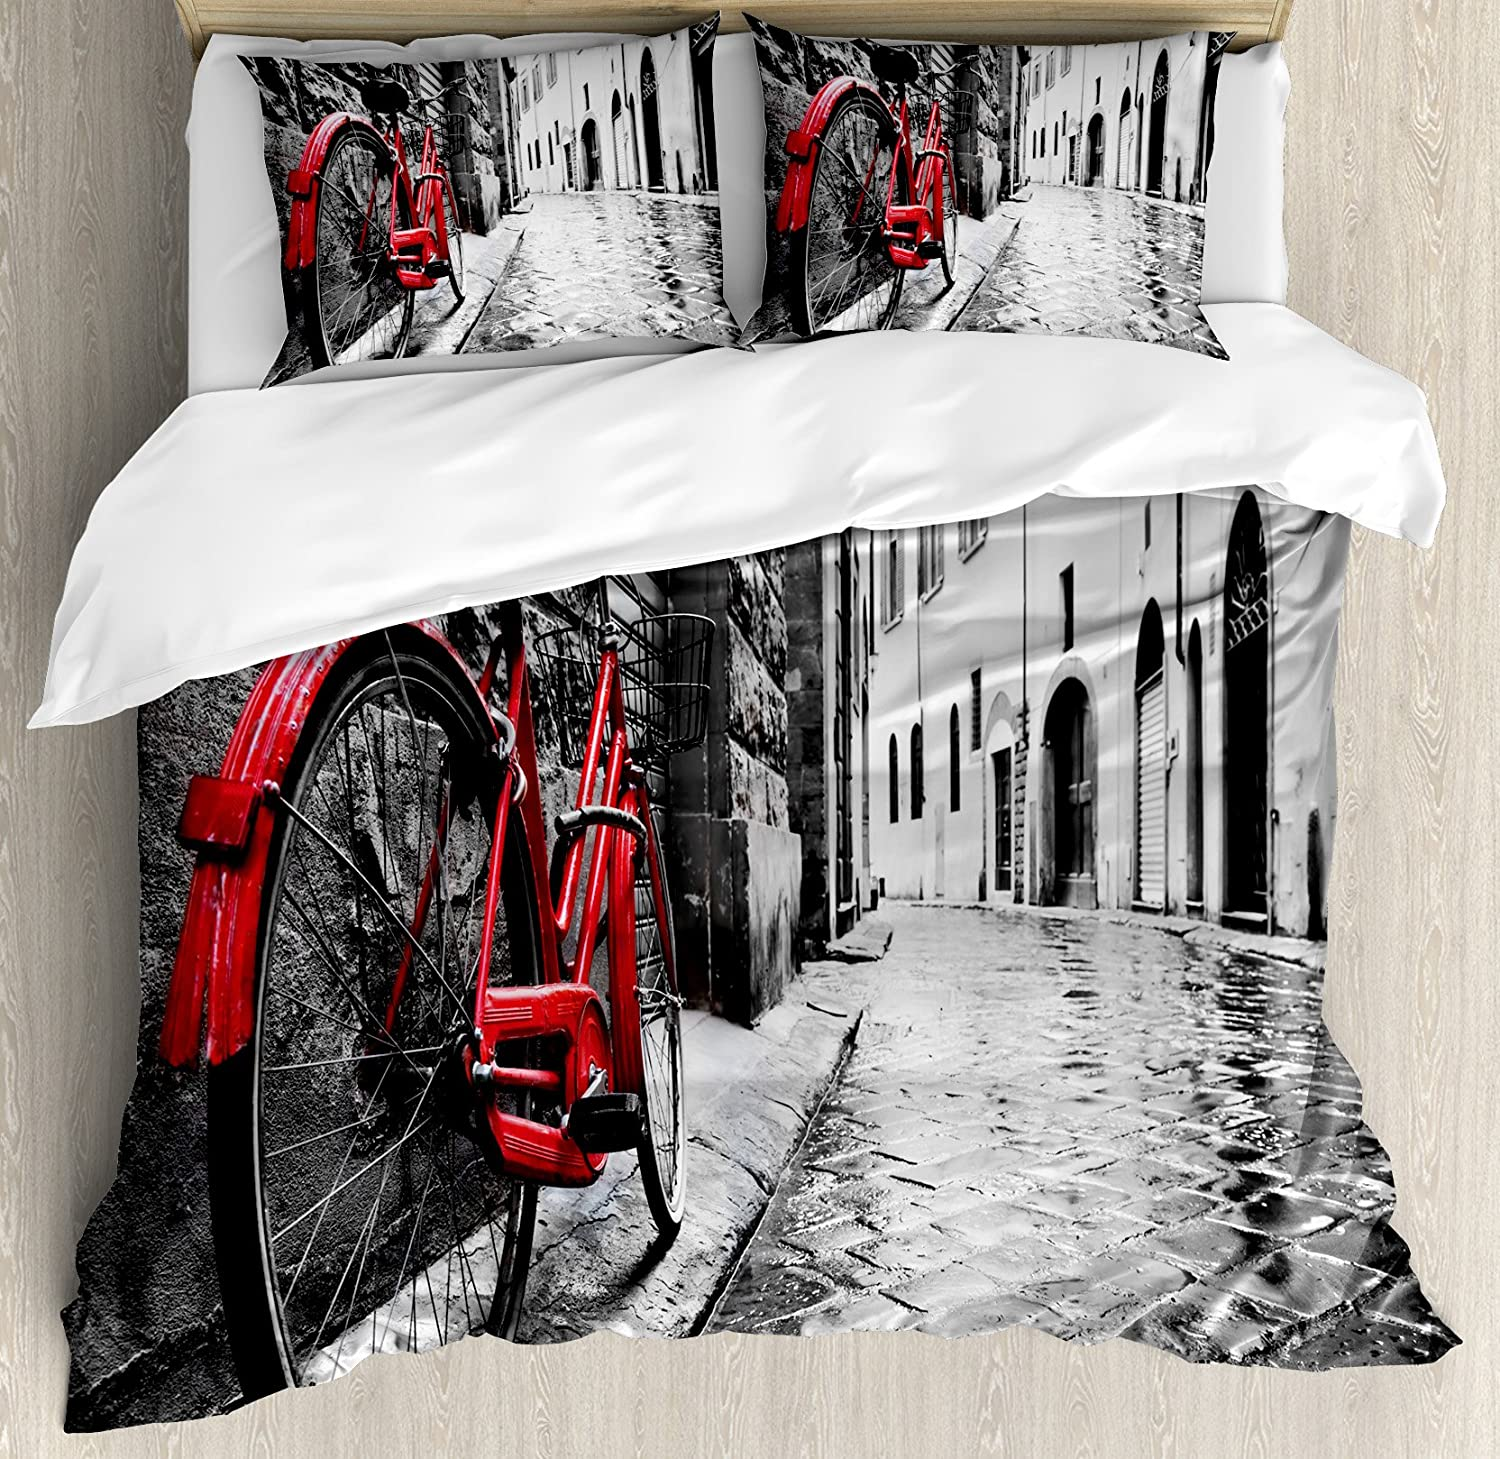 durable service Ambesonne Bicycle Duvet Cover Set Queen Size, Classic Bike on Cobblestone Street in Italian Town Leisure Artistic Photo, Decorative 3 Piece Bedding Set with 2 Pillow Shams, Red Black and White